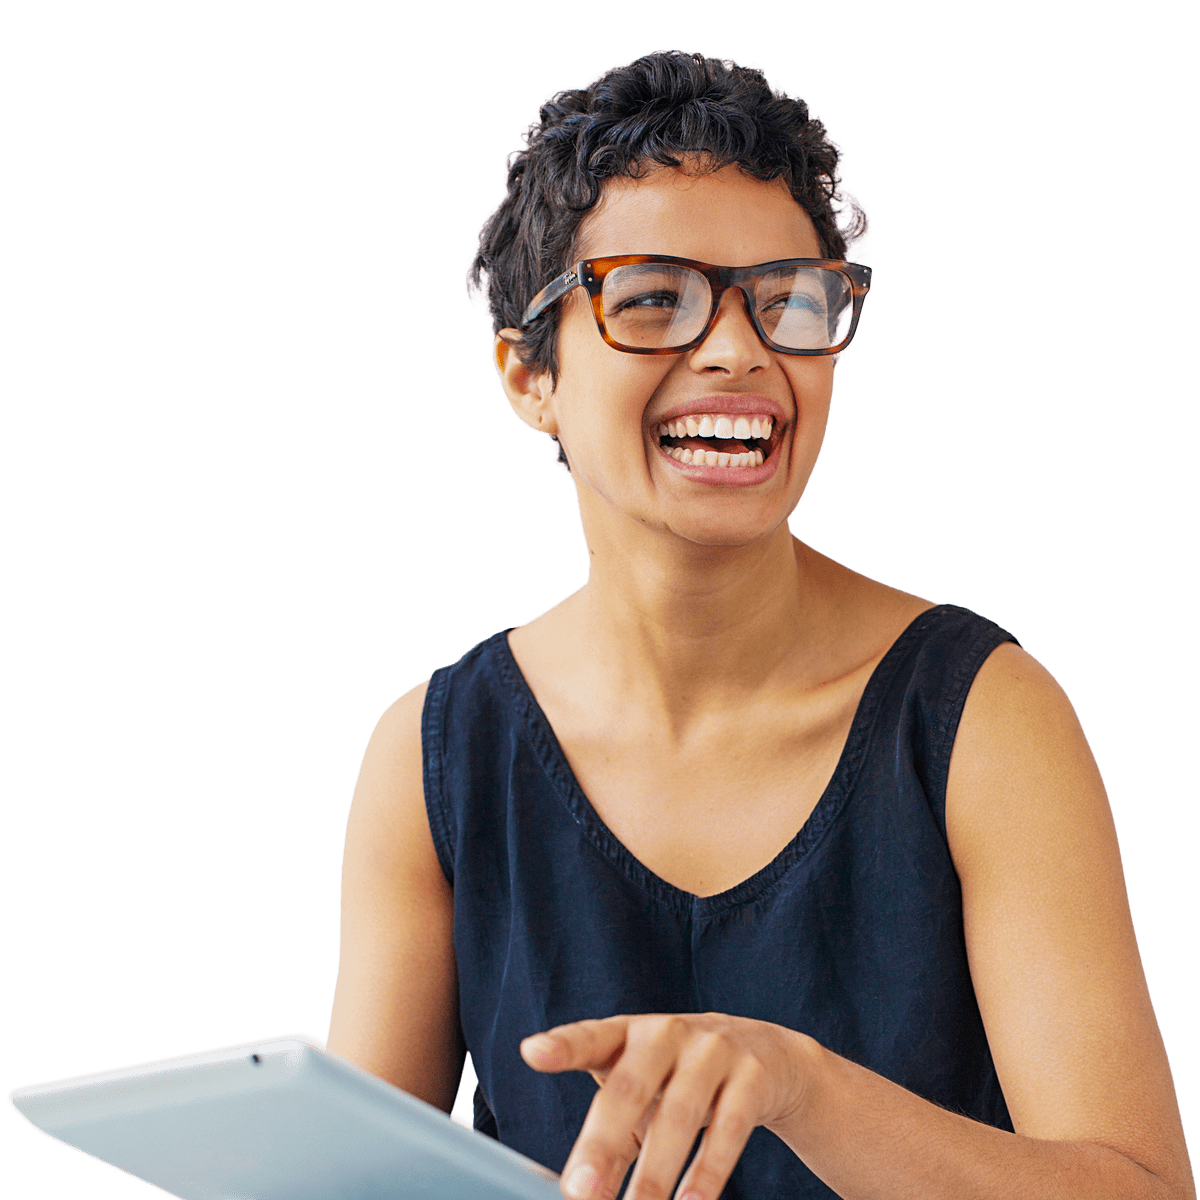 Woman in glasses working on an ipad as she laughs while looking off to the side.